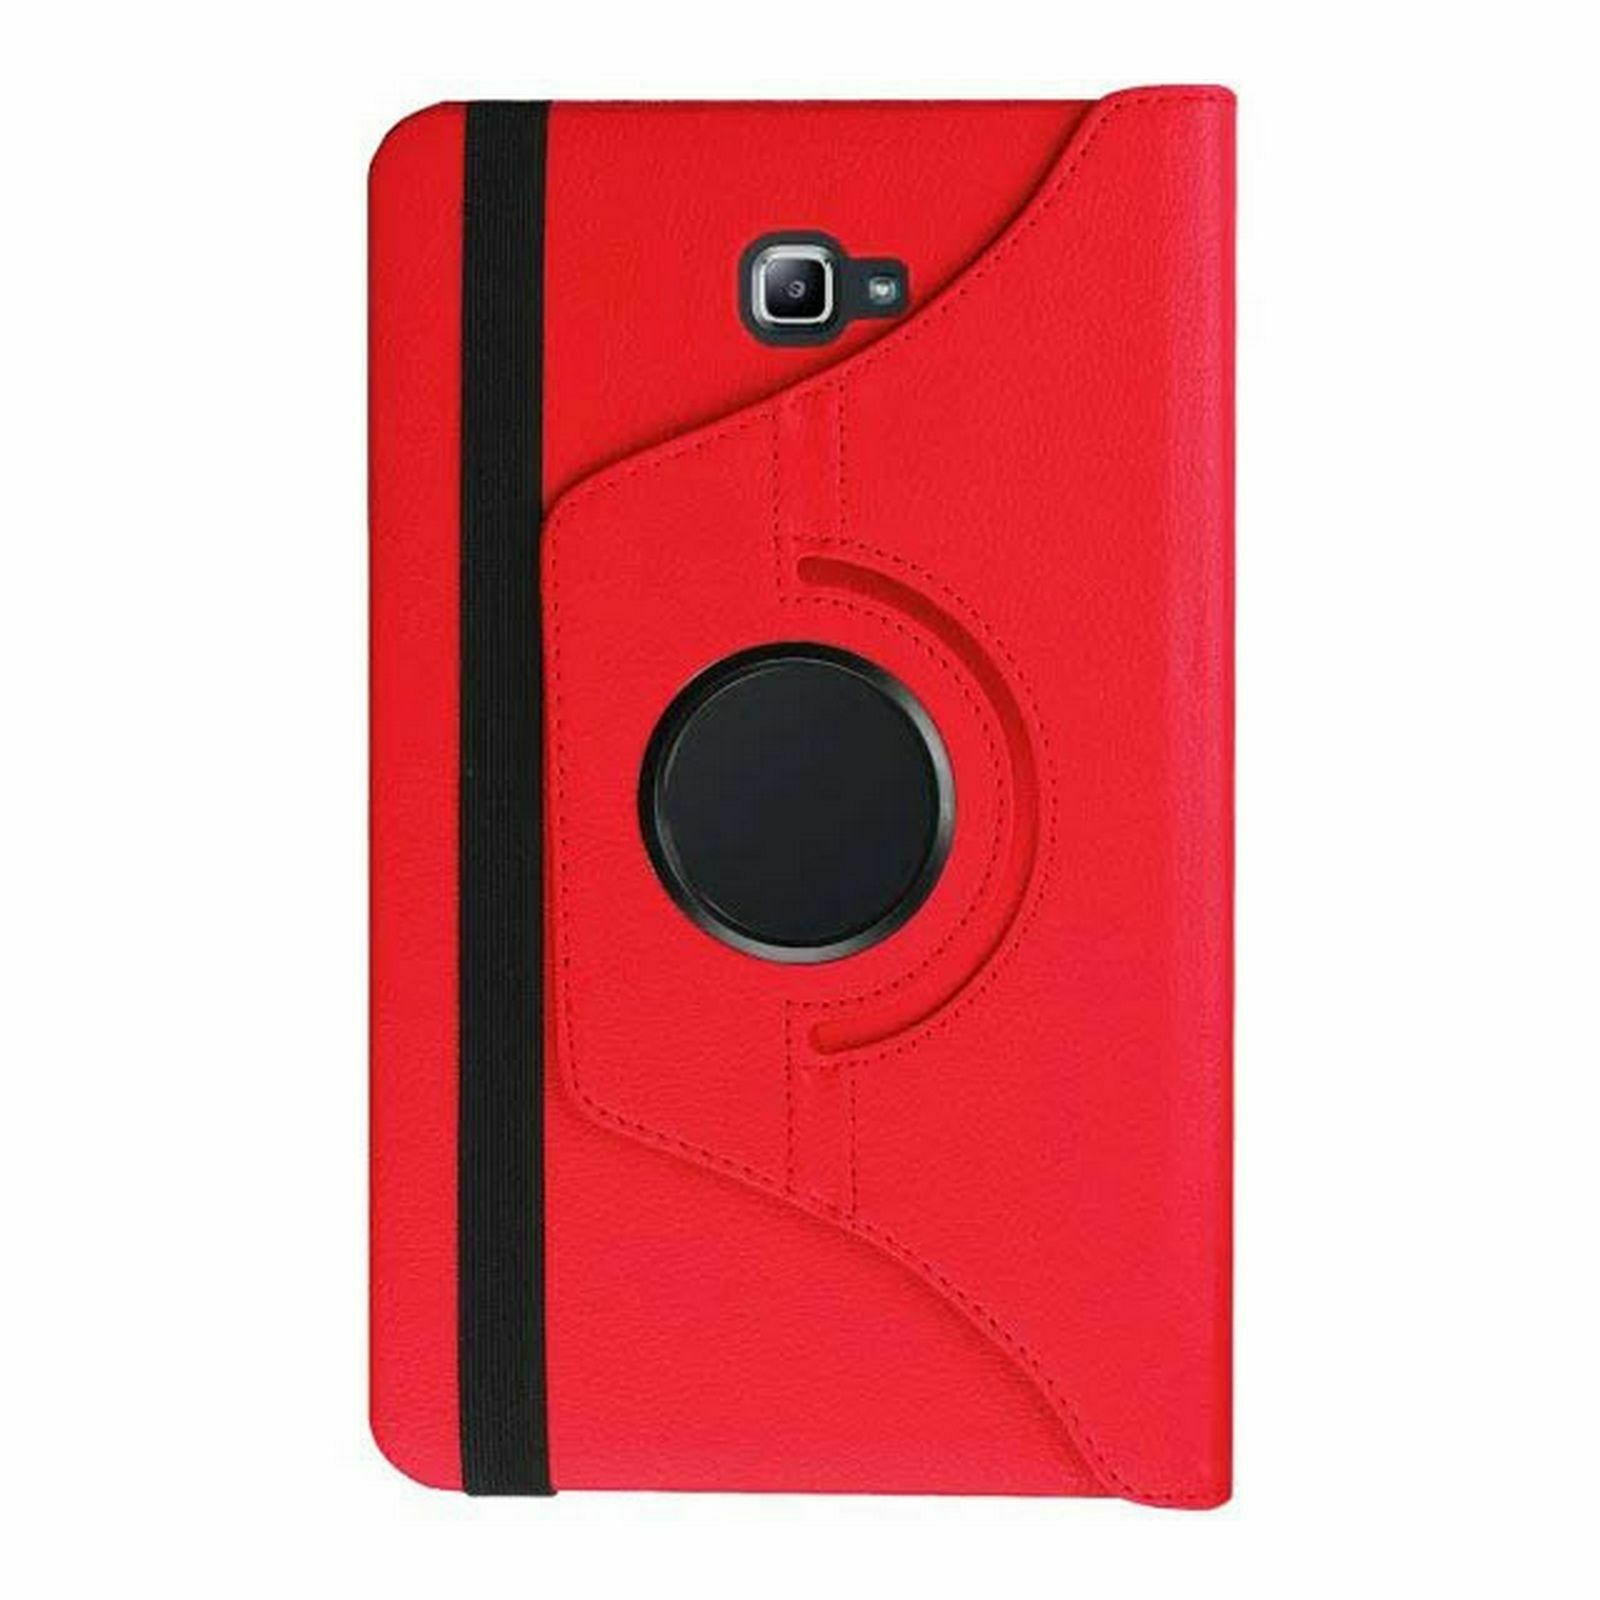 thumbnail 35 - Cover-For-Samsung-Galaxy-Tab-A-2016-10-1-SM-T580-SM-T585-Case-Pouch-Case